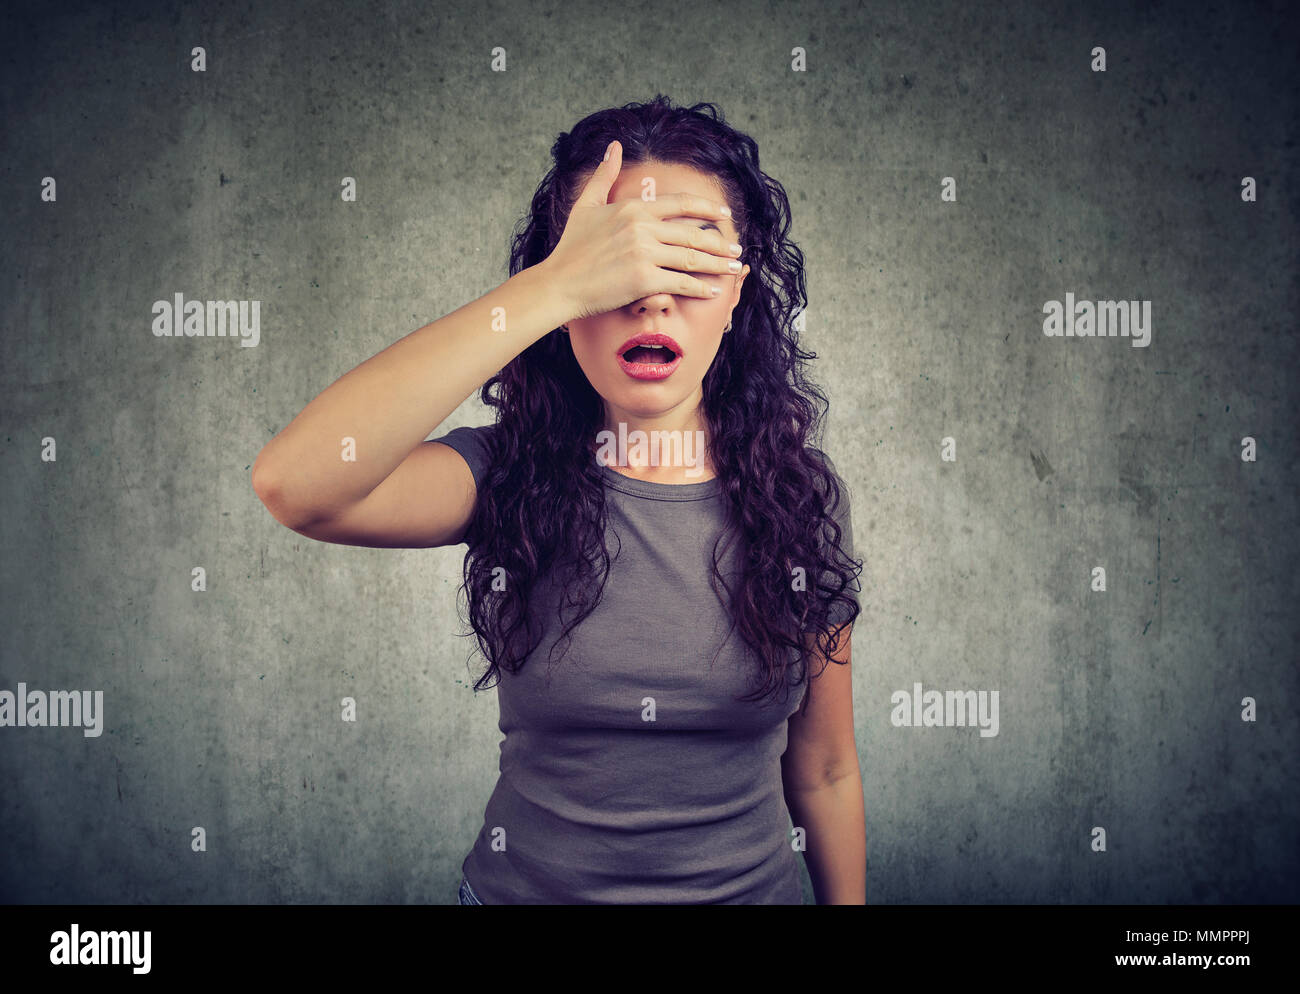 Regretful young woman covering her eyes - Stock Image